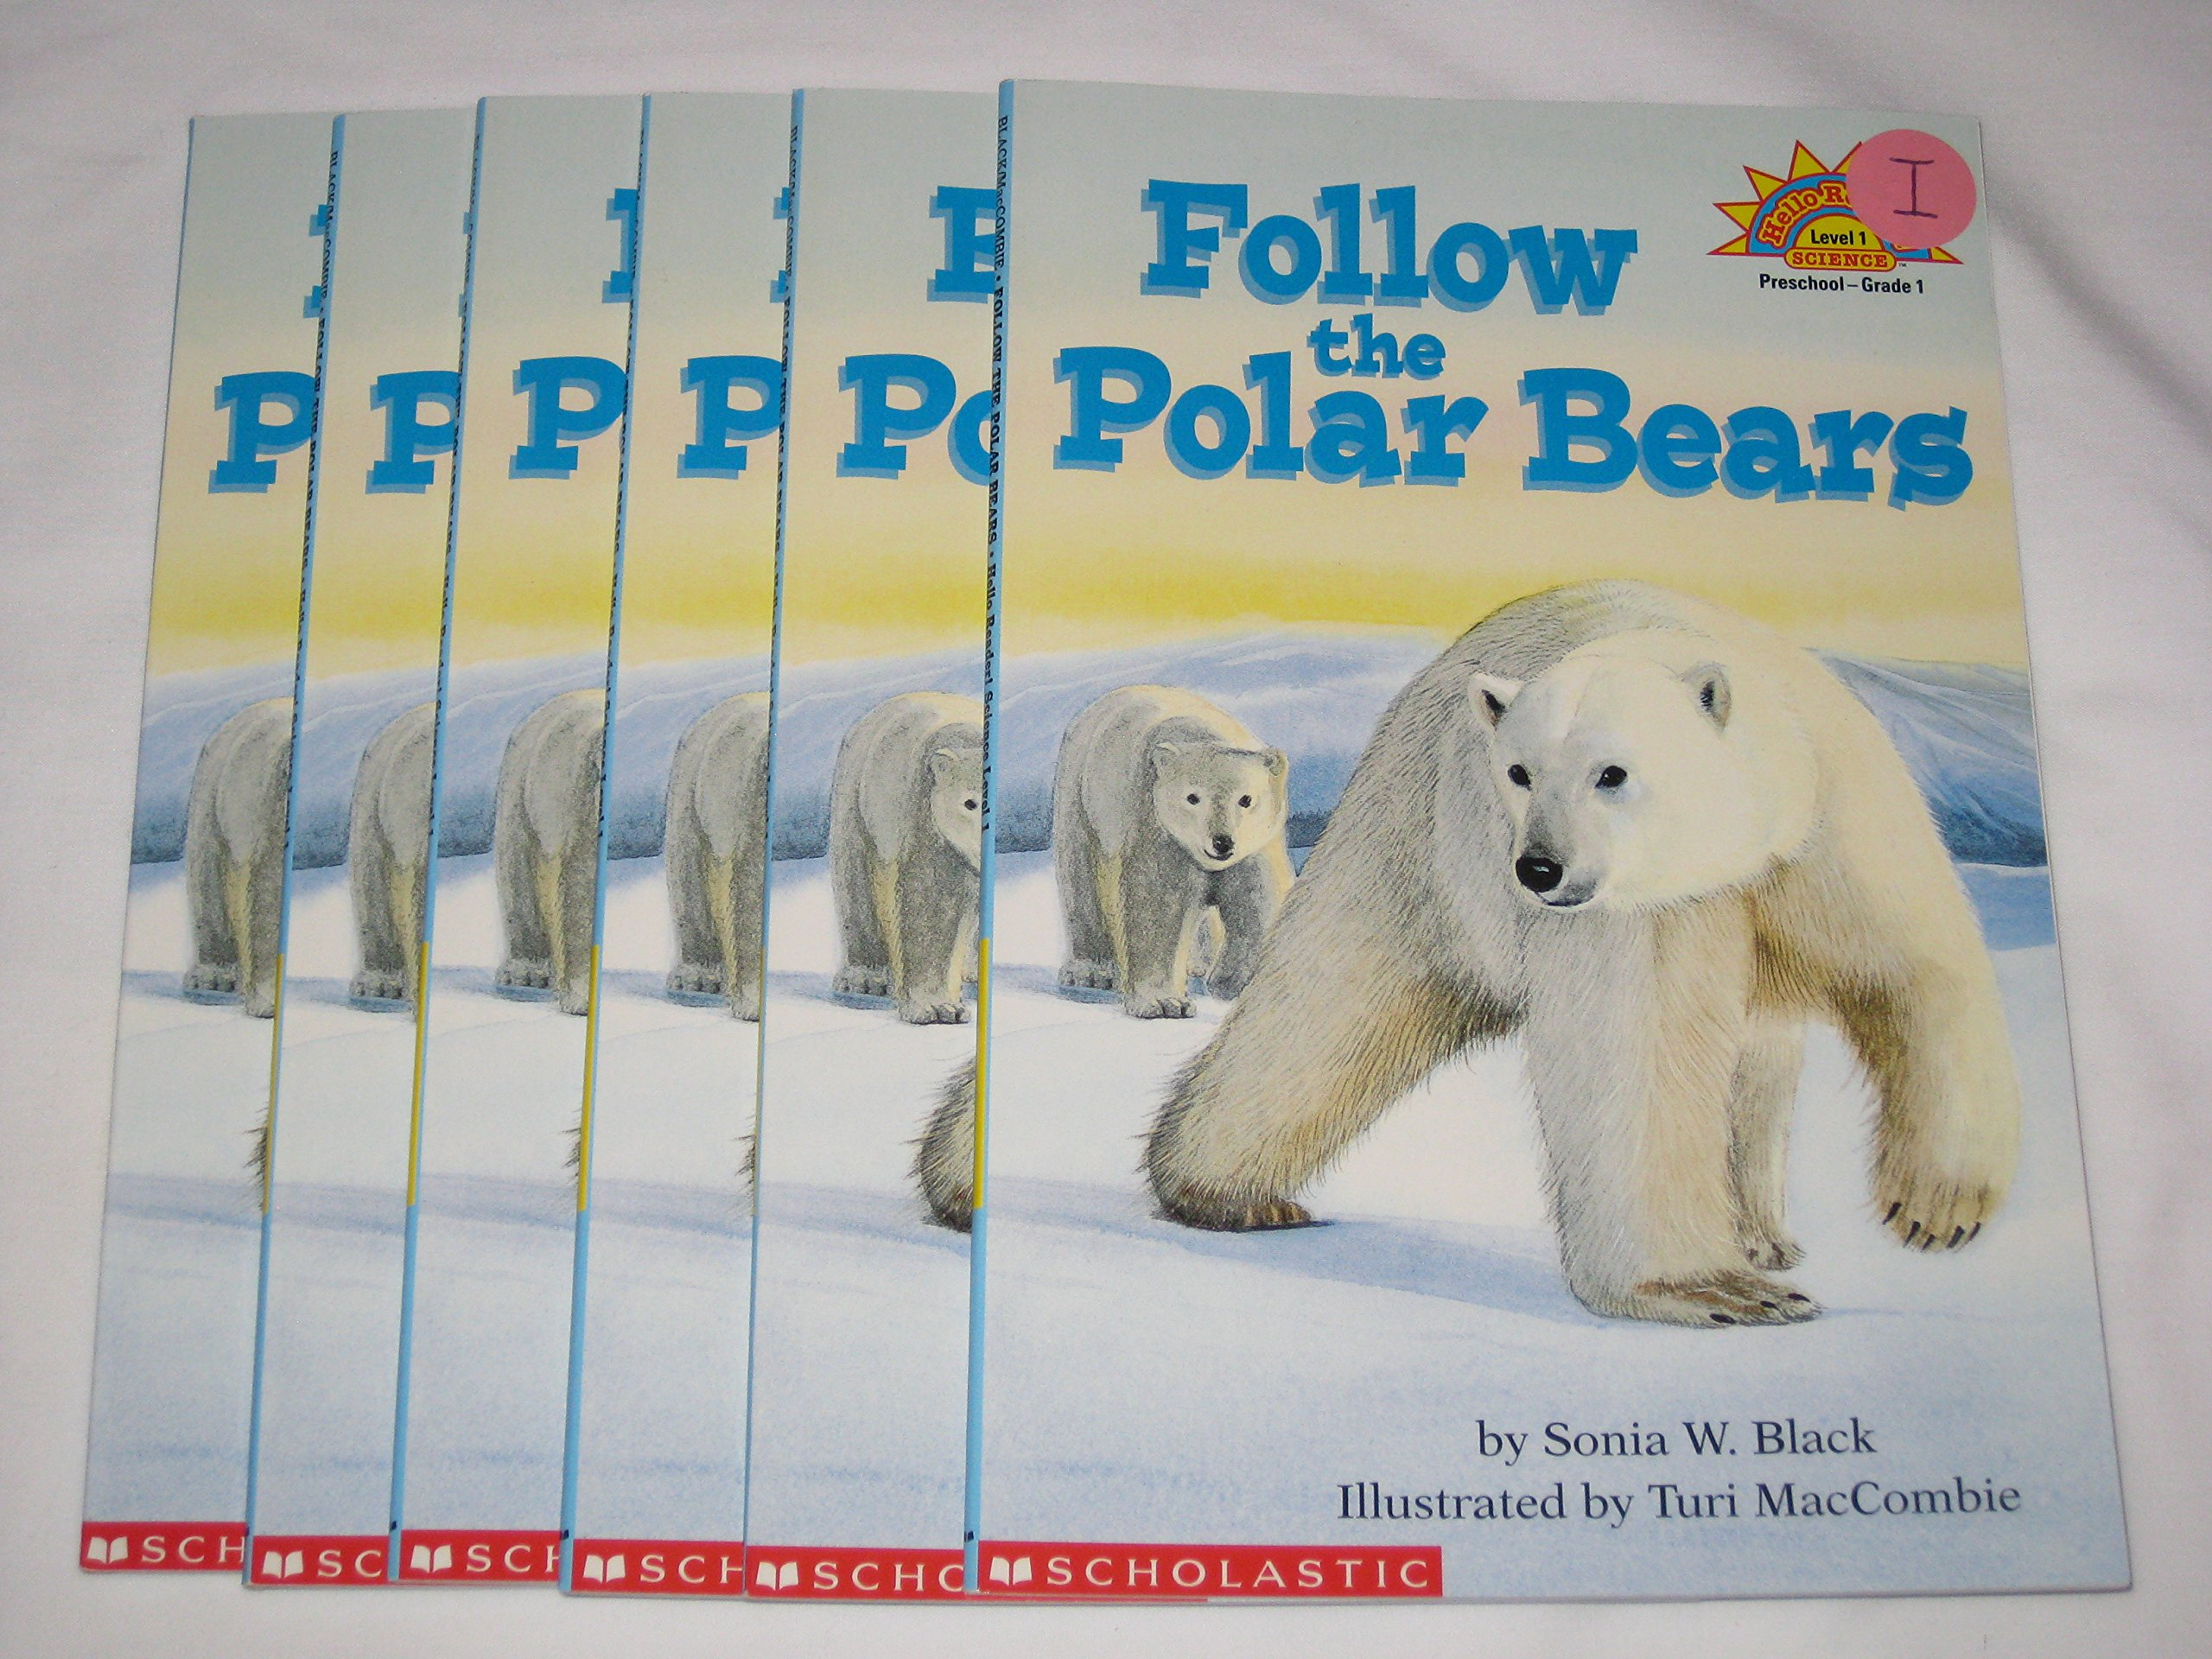 Read Online Guided Reading Set - Follow the Polar Bears by Sonia W. Black (6 books) ebook